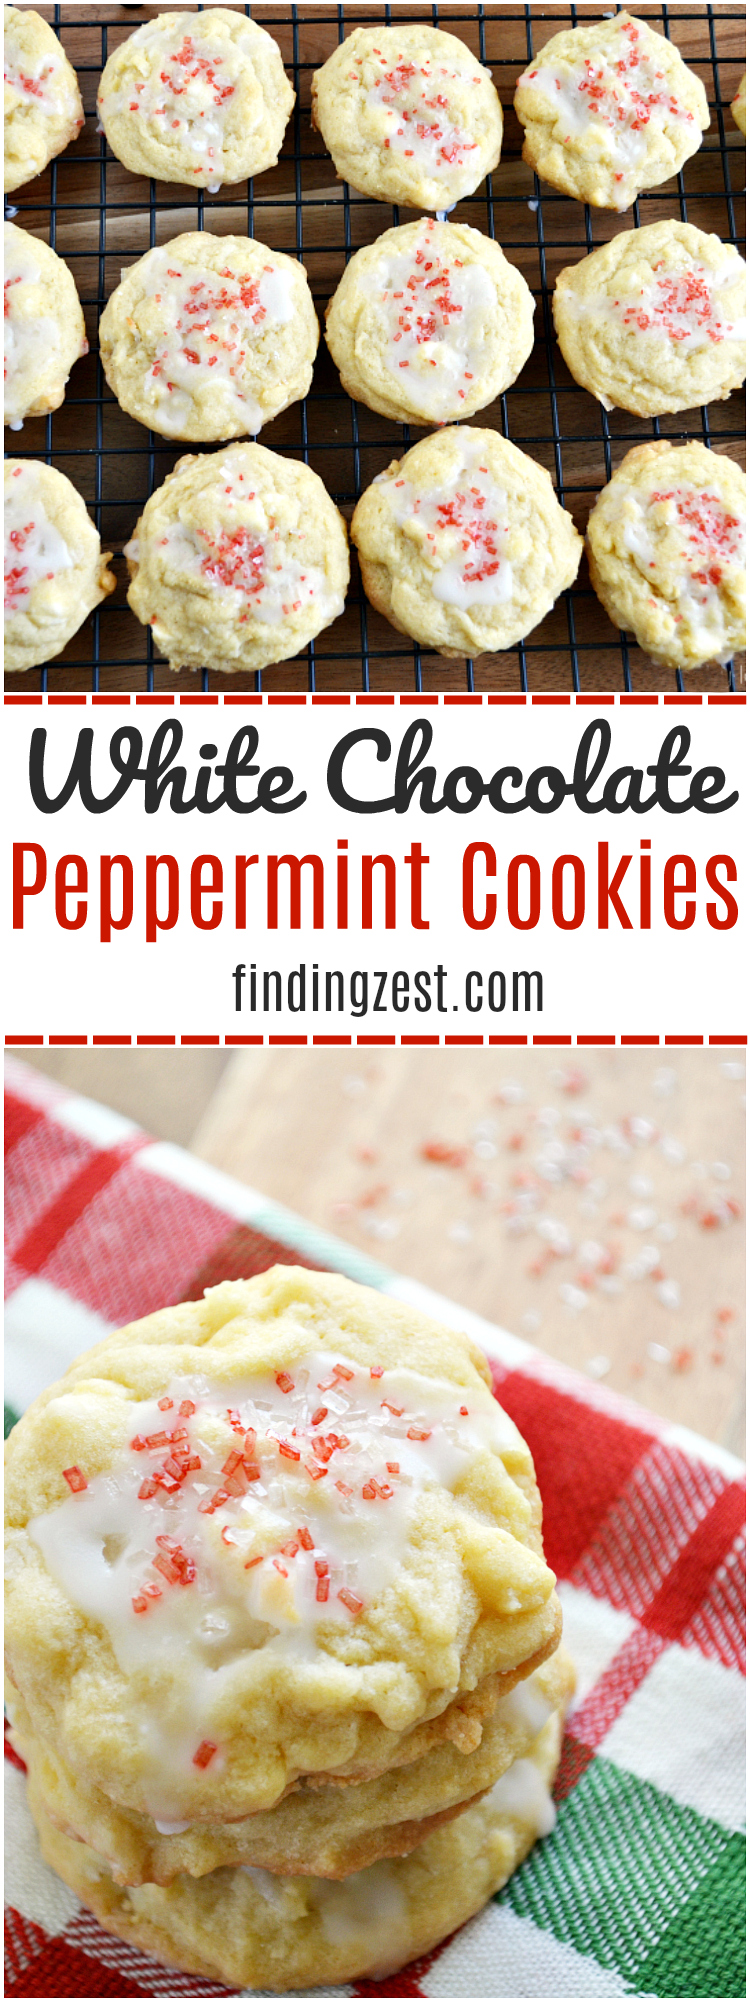 Enjoy these super soft white chocolate peppermint cookies with icing, including a surprise ingredient! These cookies are a perfect for holiday baking.